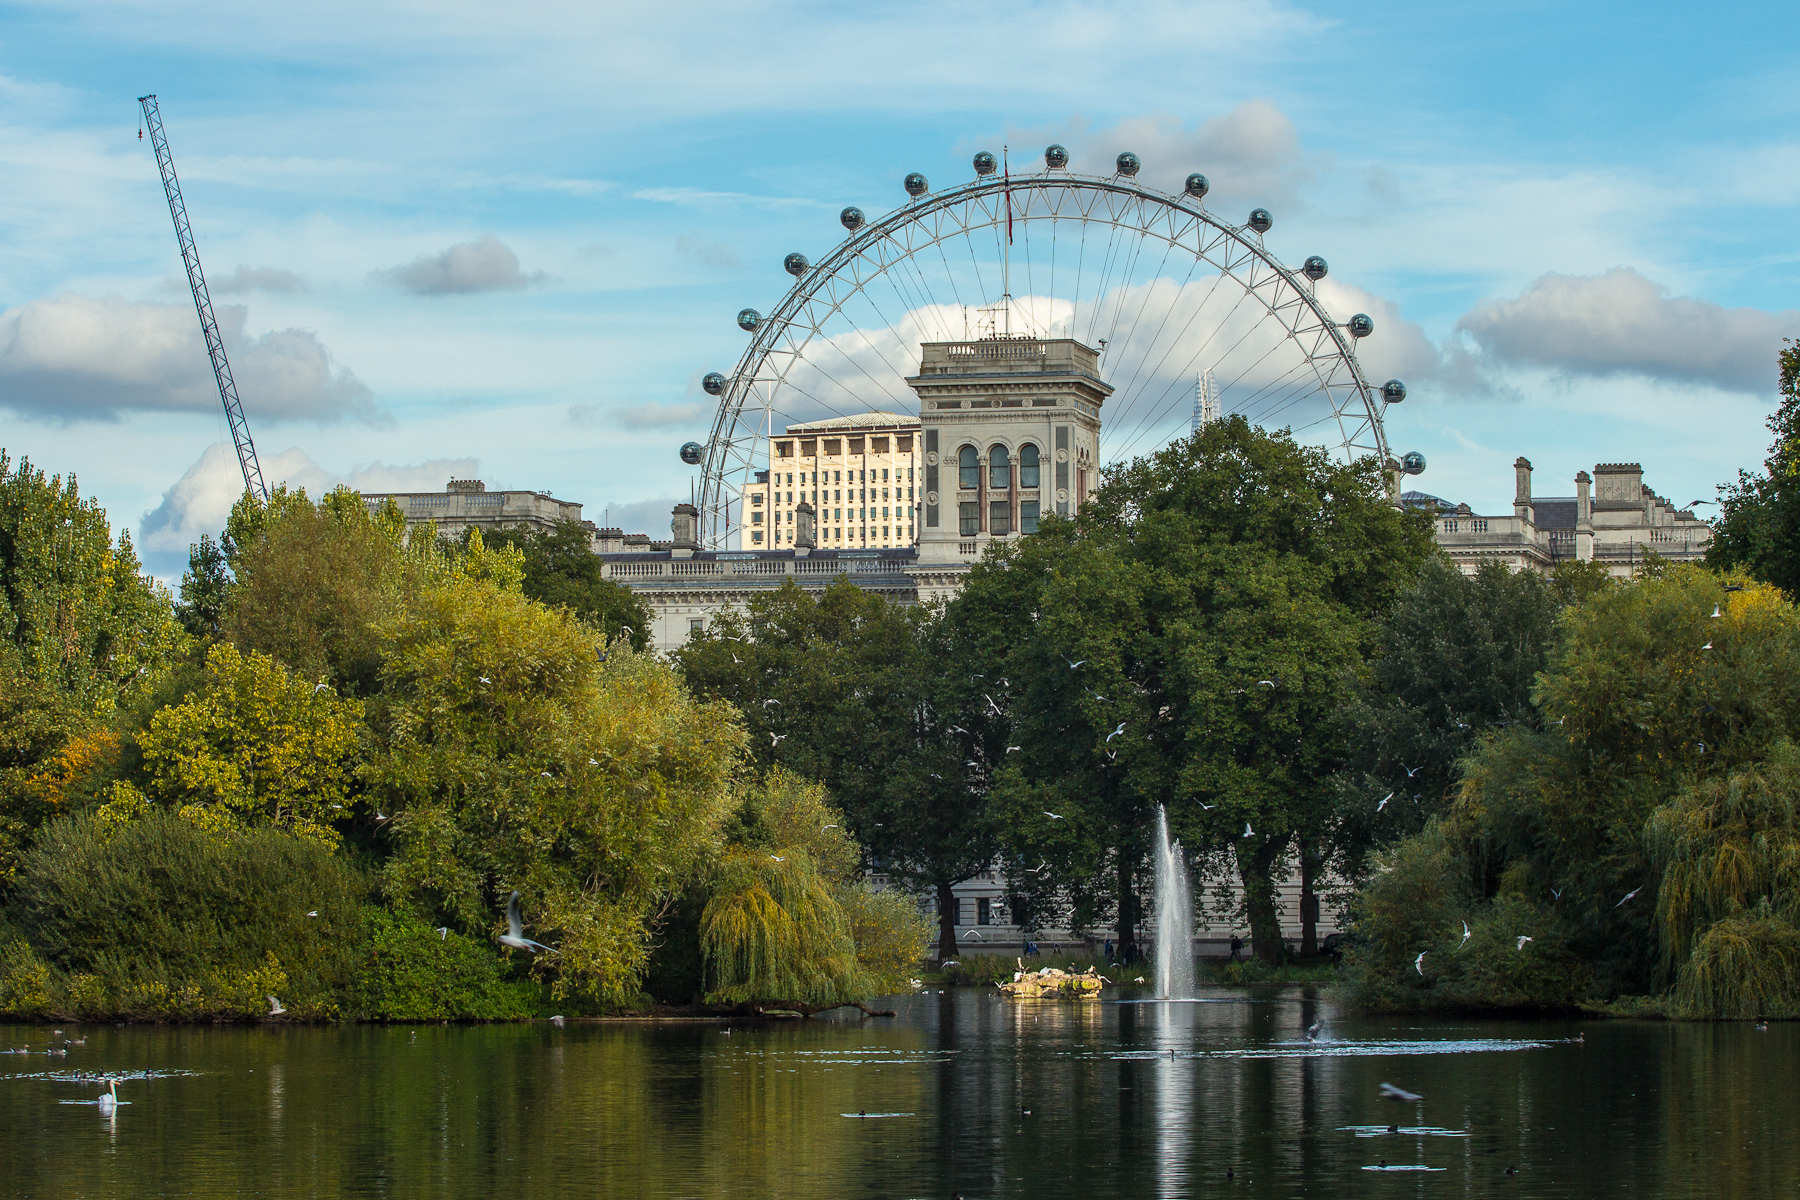 London In The Eye Via @Atisgailis